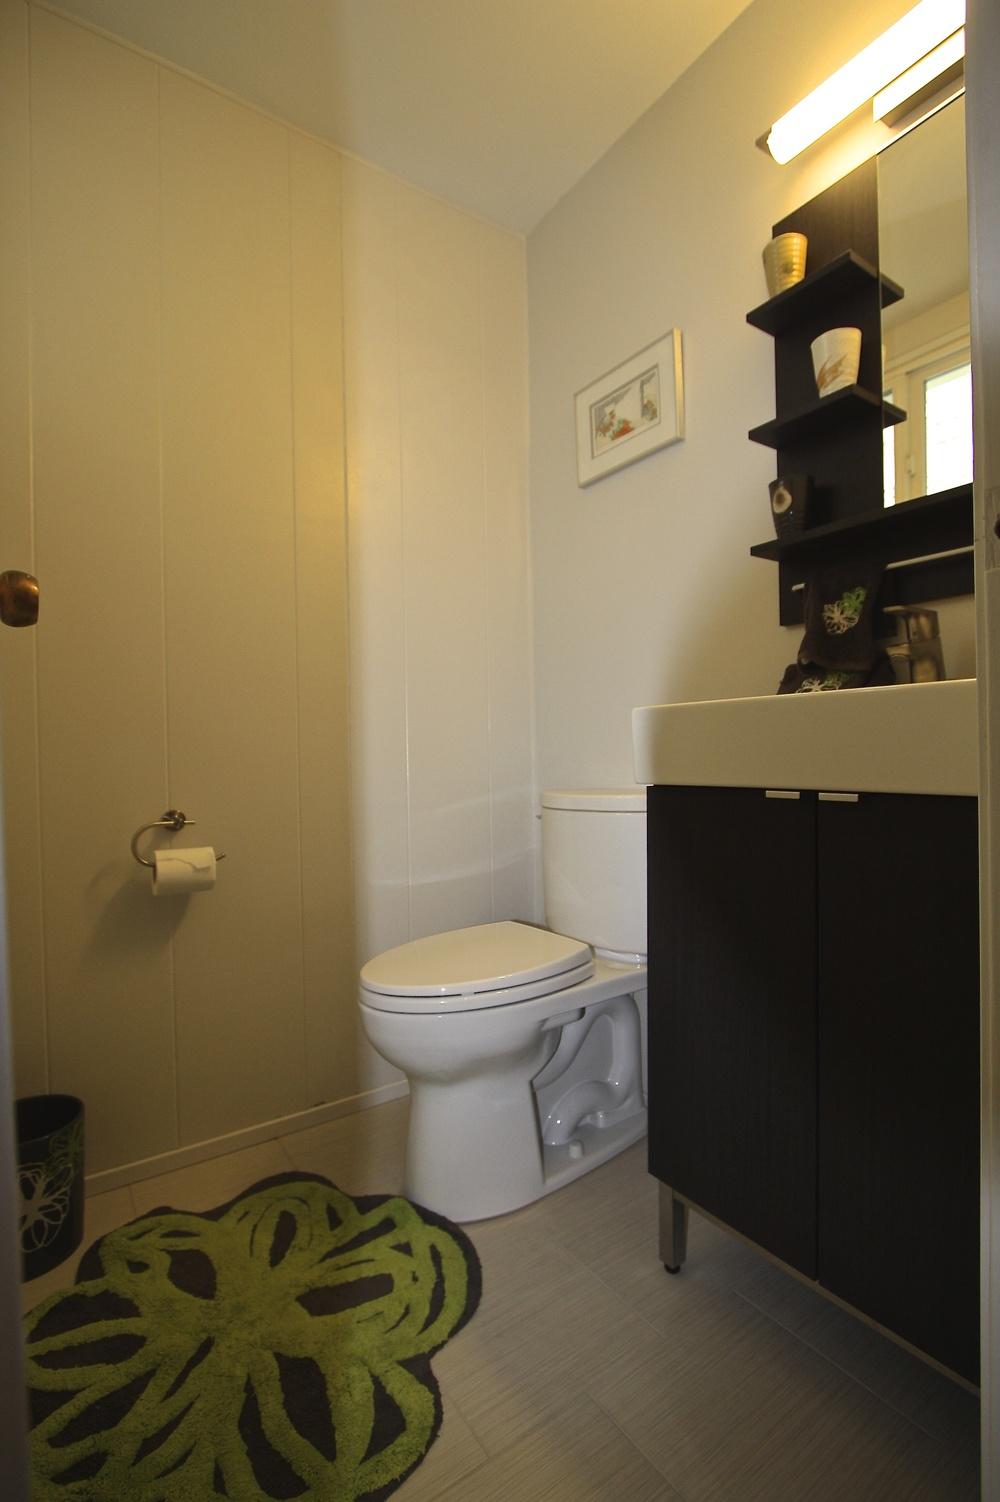 Half bath was reduced by about 6 sq. ft. to allow a wider hall.